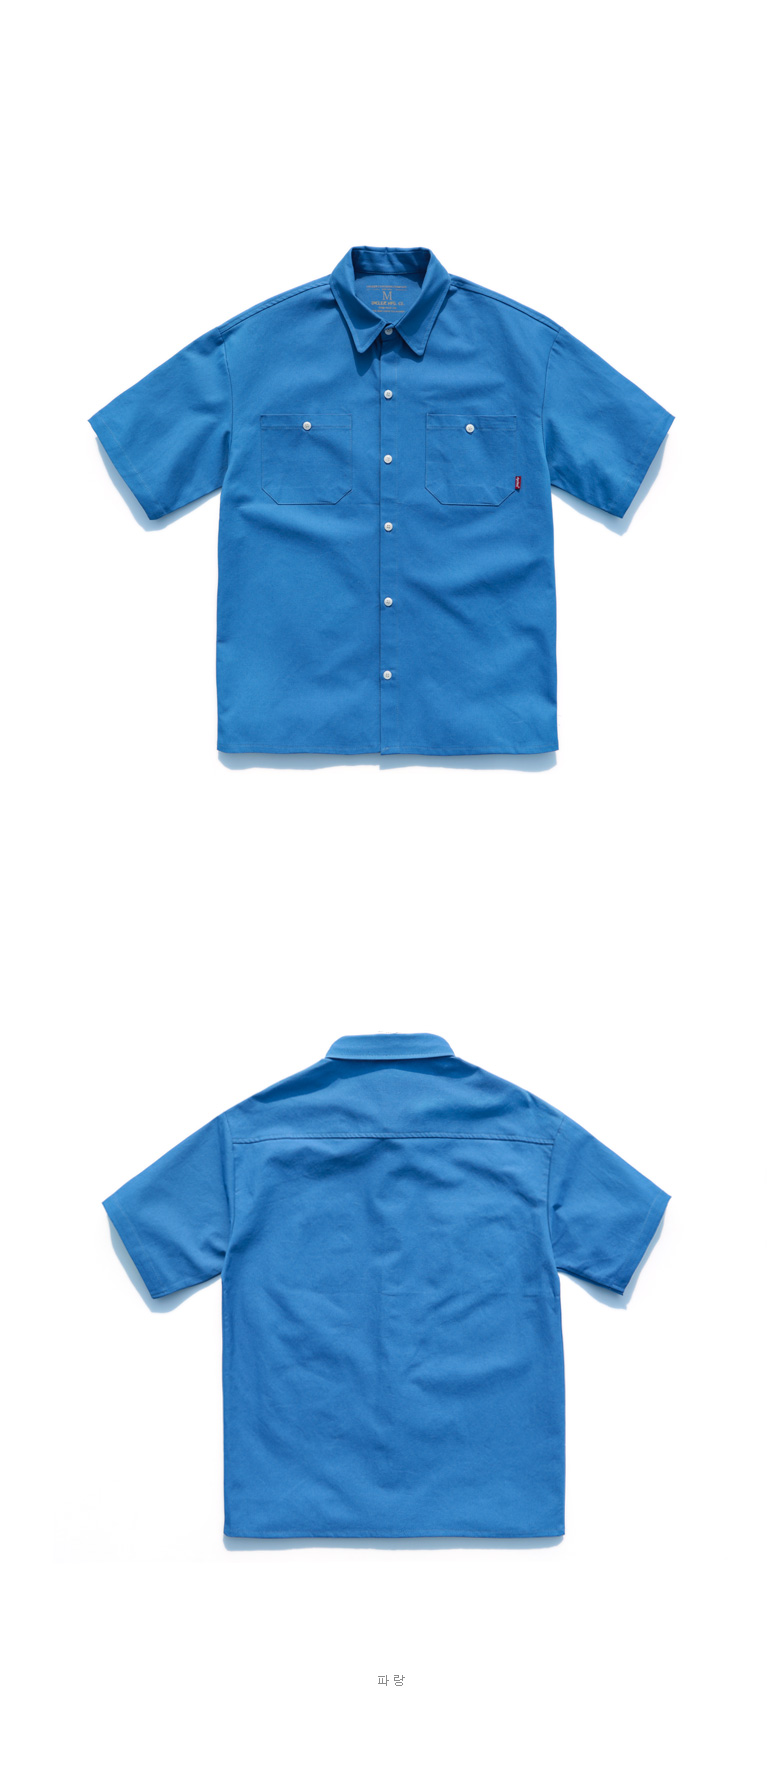 20180412_dy_twopocket_shirt_blue_uk_01.jpg